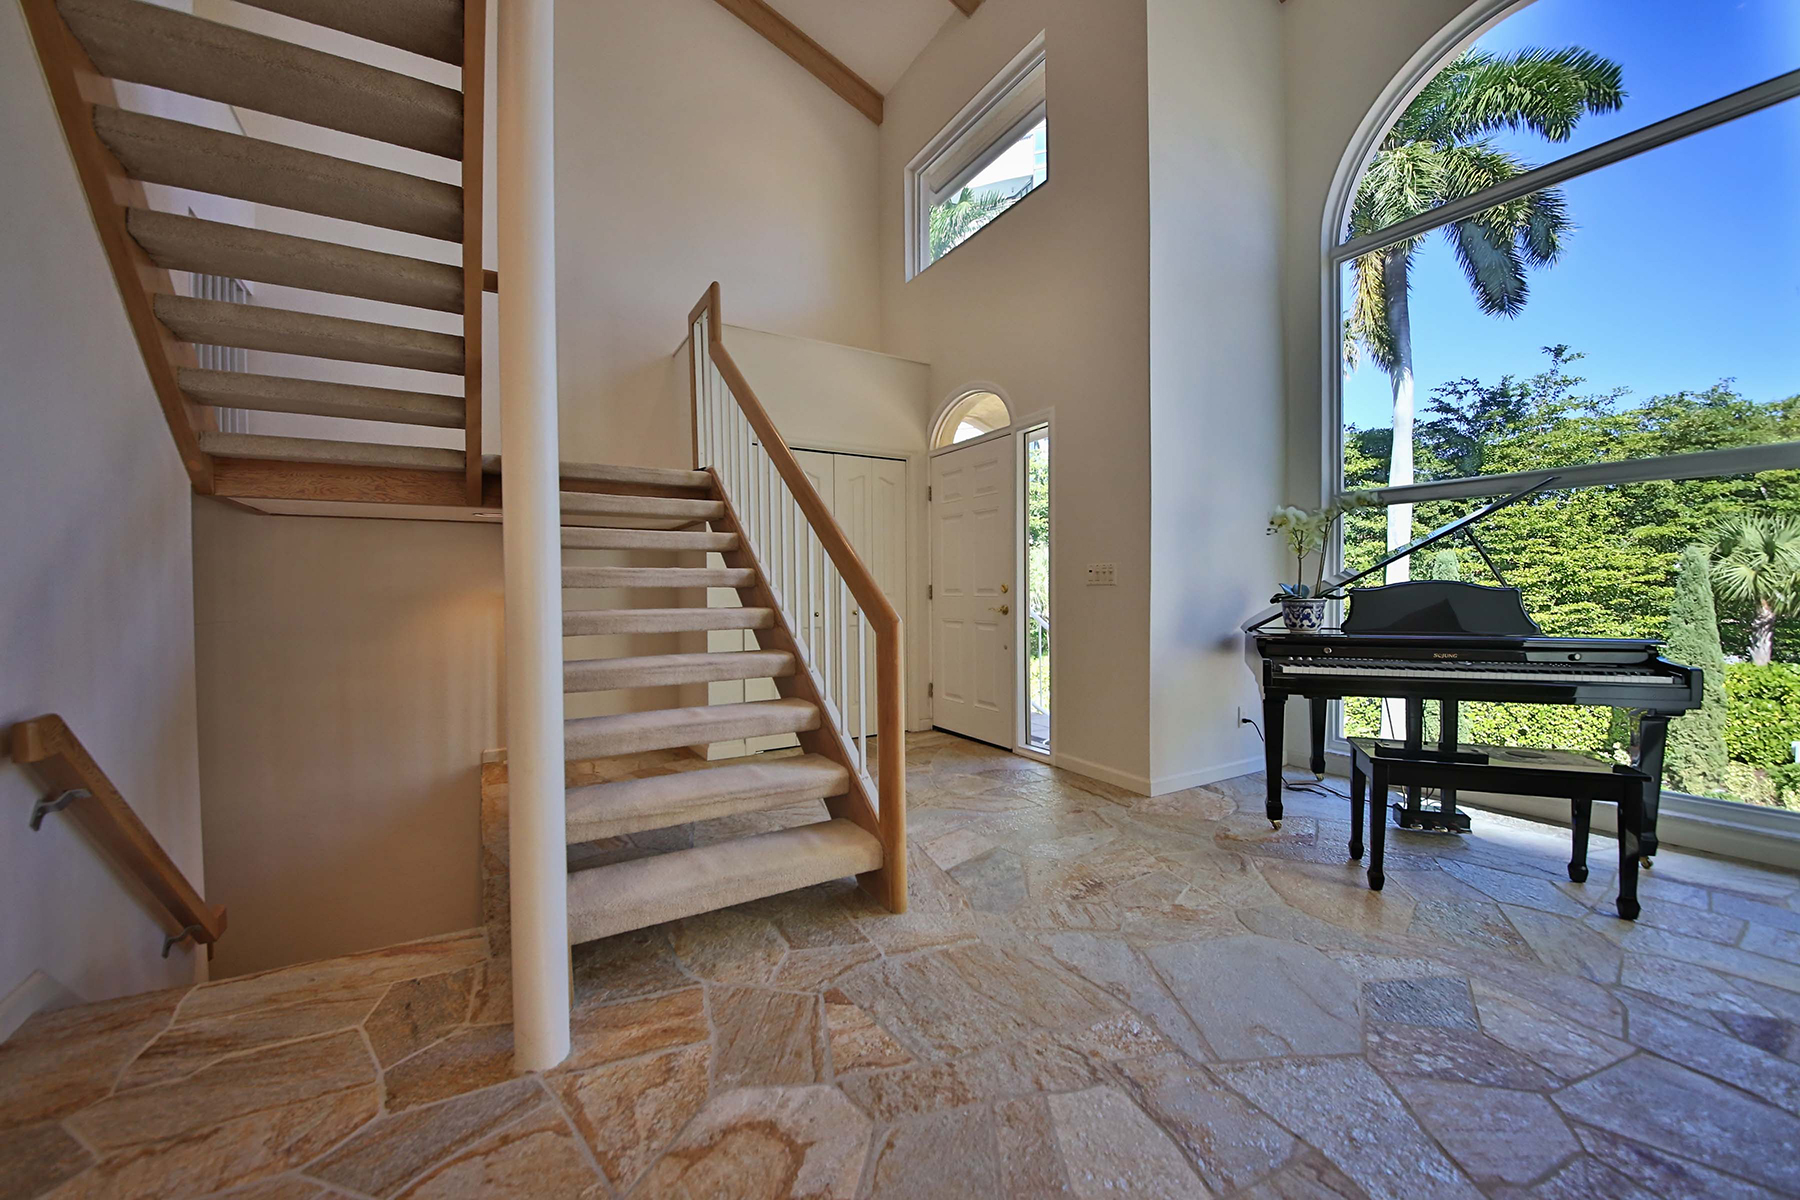 Additional photo for property listing at PARK SHORE - VILLA MARE 4705  Villa Mare Ln,  Naples, Florida 34103 United States